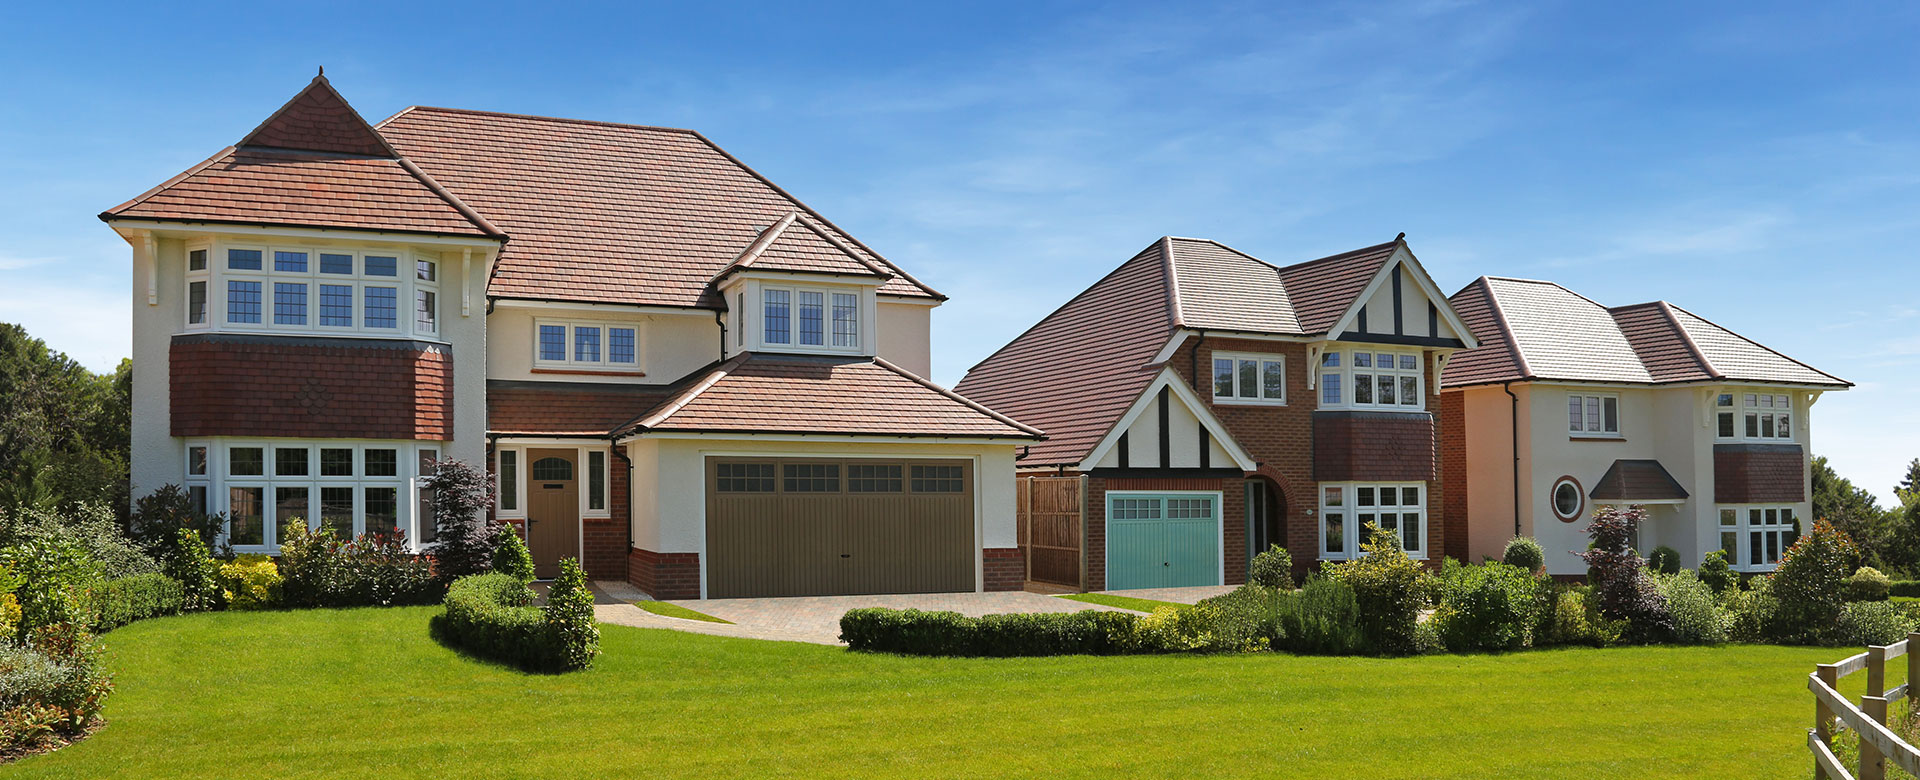 The Redrow Heritage Collection - Arts and Crafts Homes for Sale